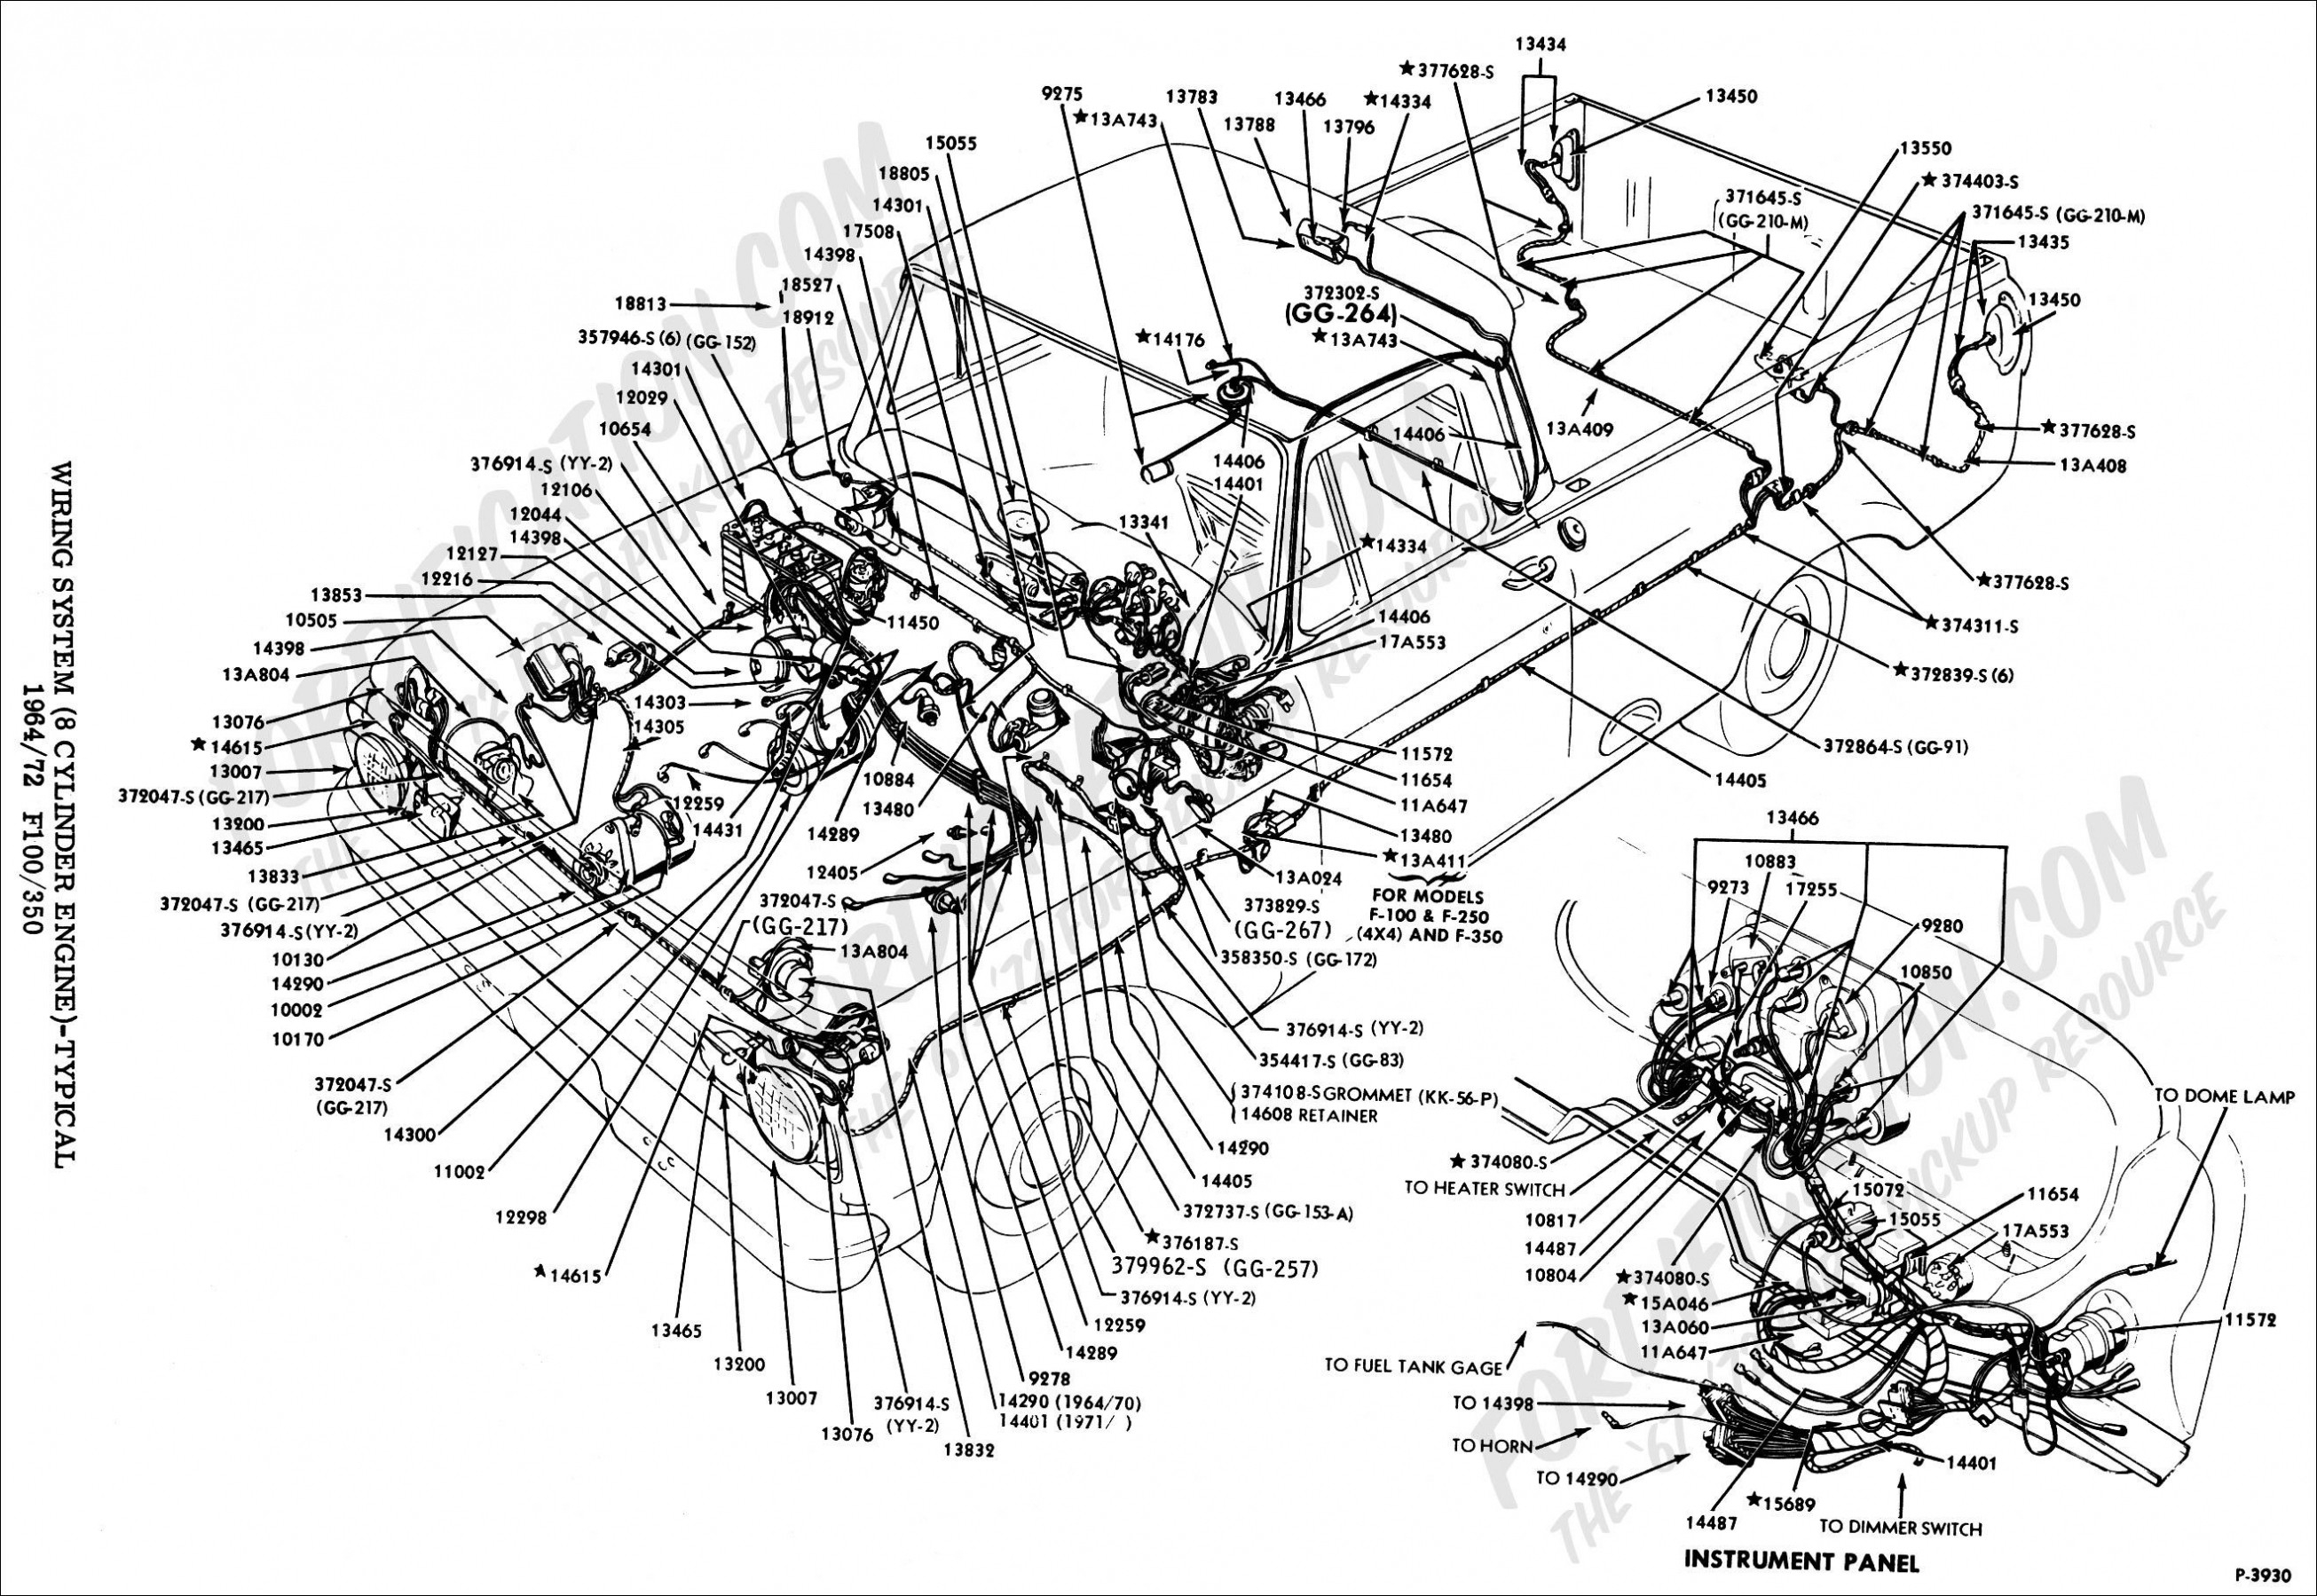 New Holland Skid Steer Parts Diagram New Holland Skid Steer Parts Diagram Of New Holland Parts Diagram